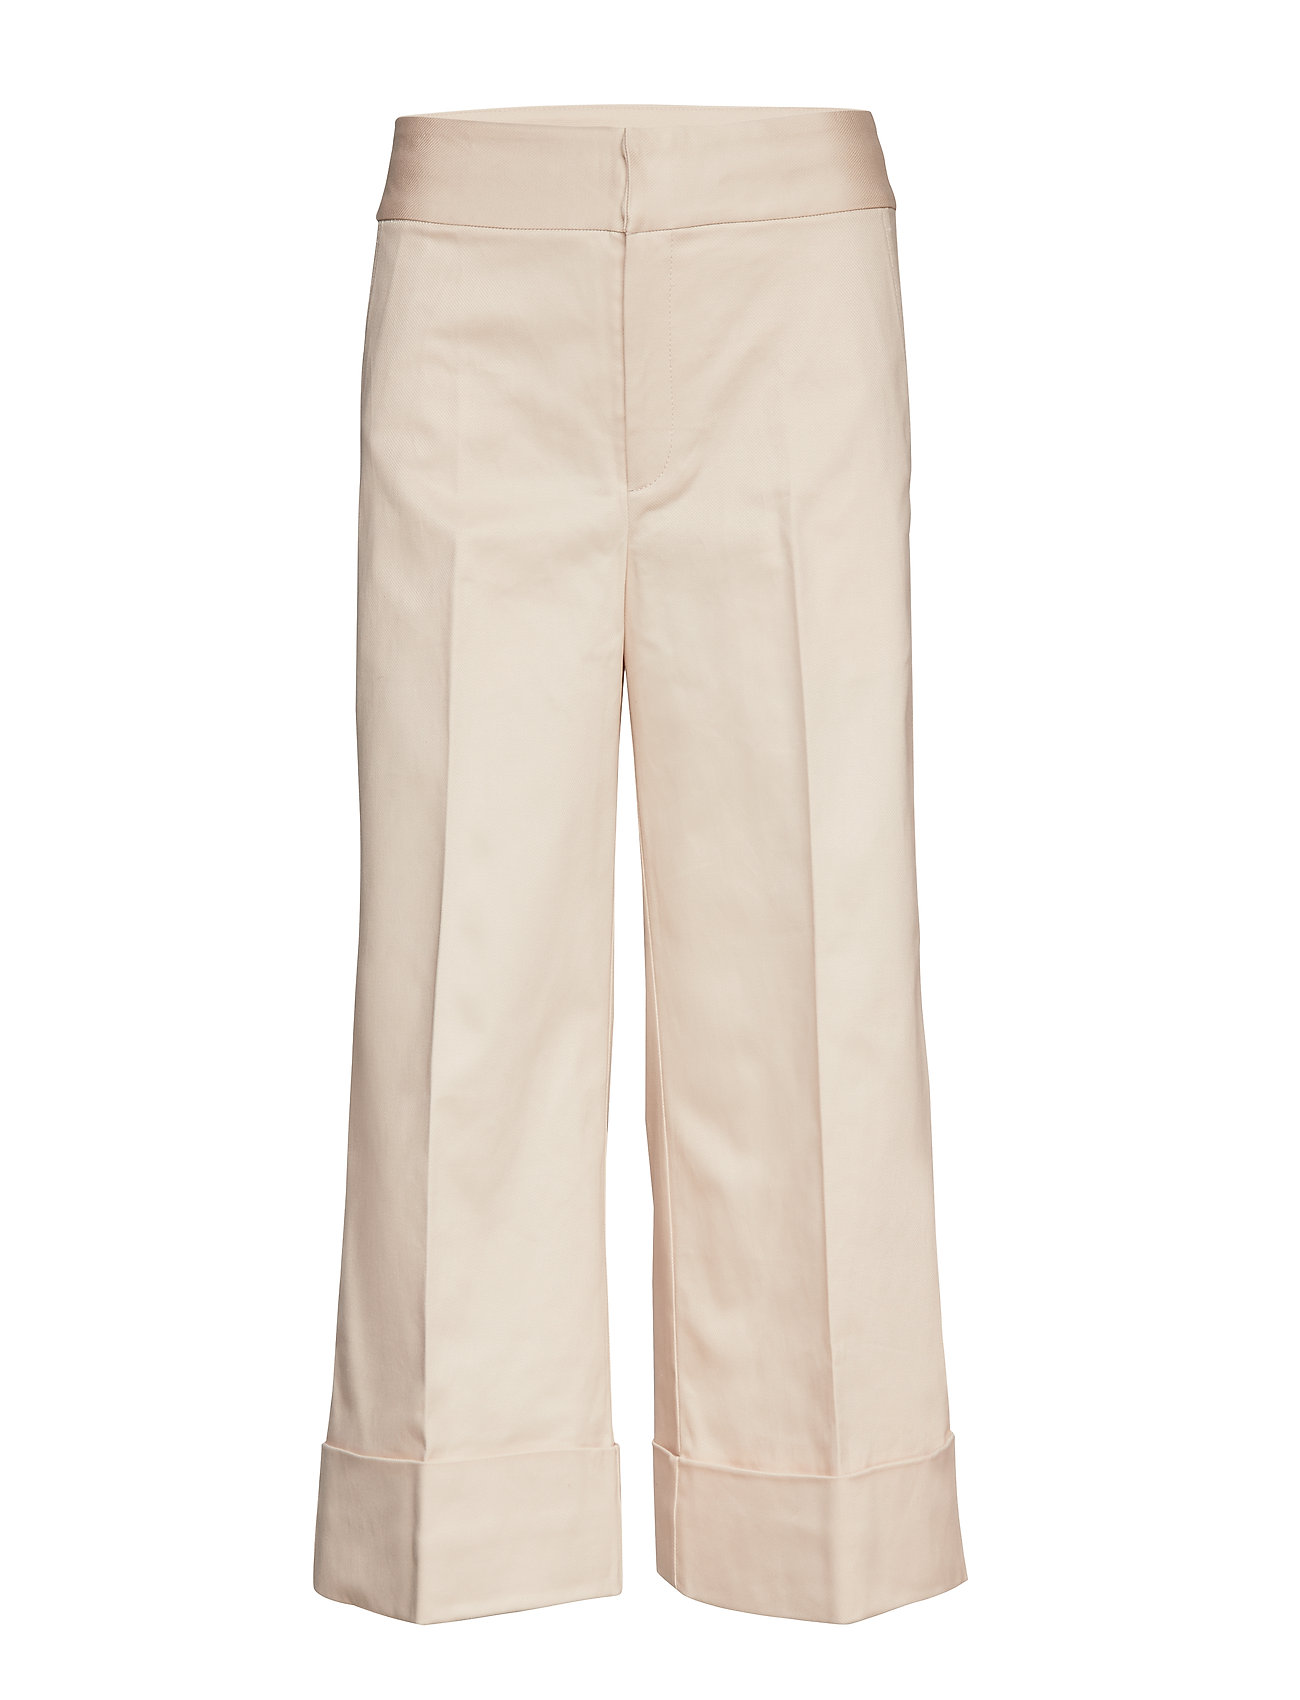 InWear CadeauIW Culotte Pant - FRENCH NOUGAT